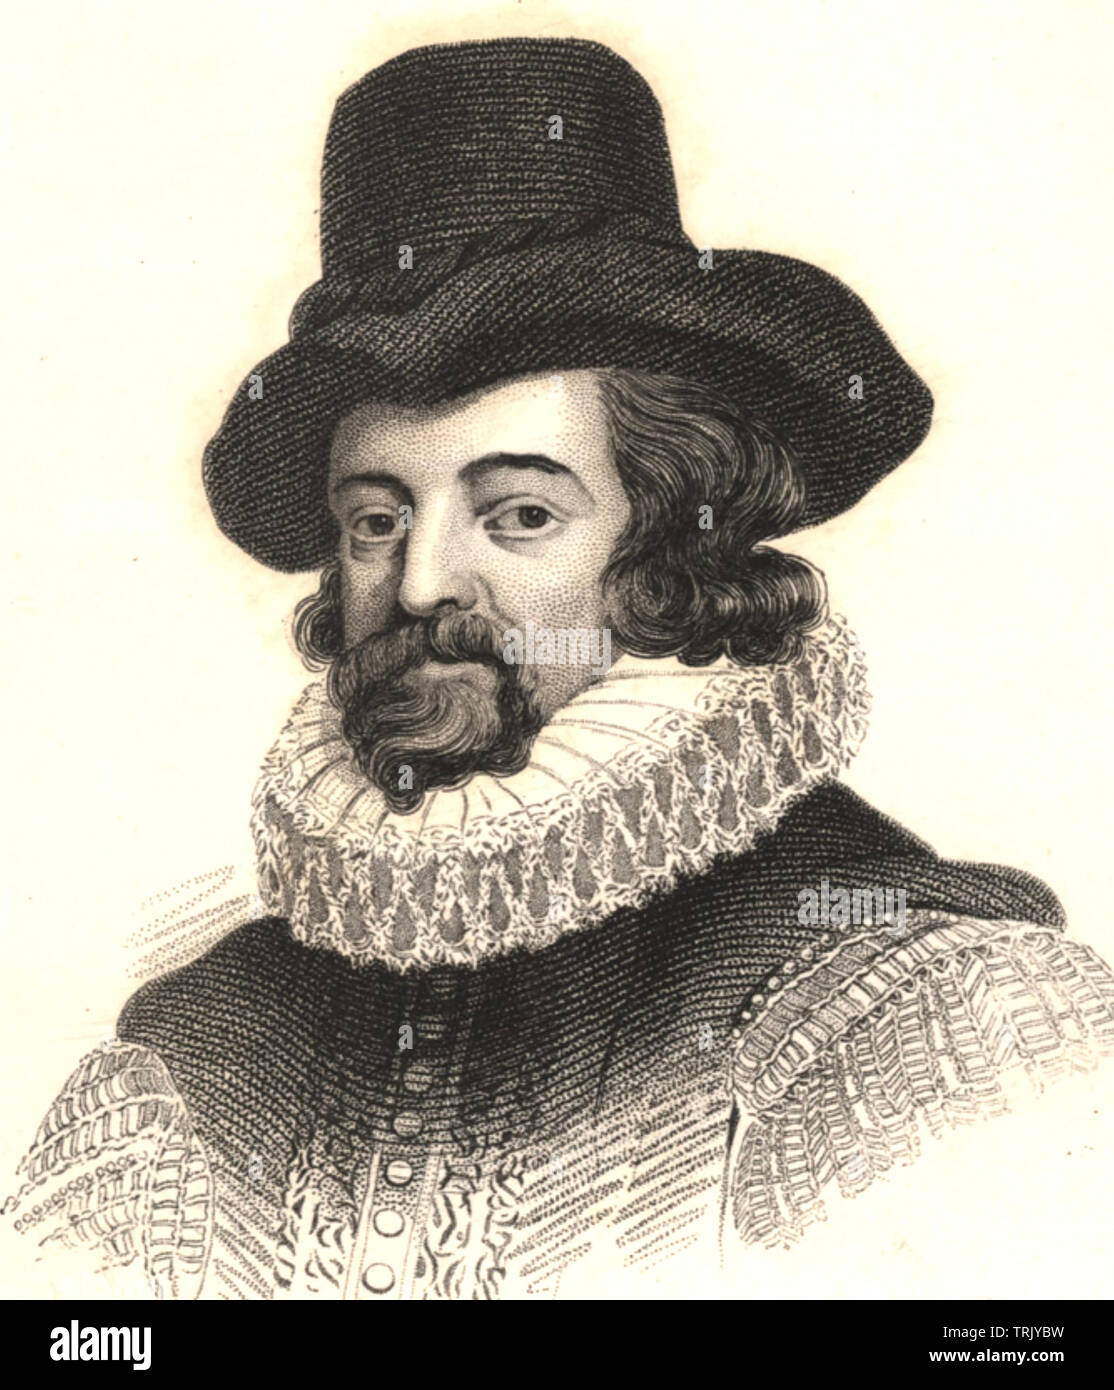 FRANCIS BACON (1561-1626) English philosopher and statesman - Stock Image